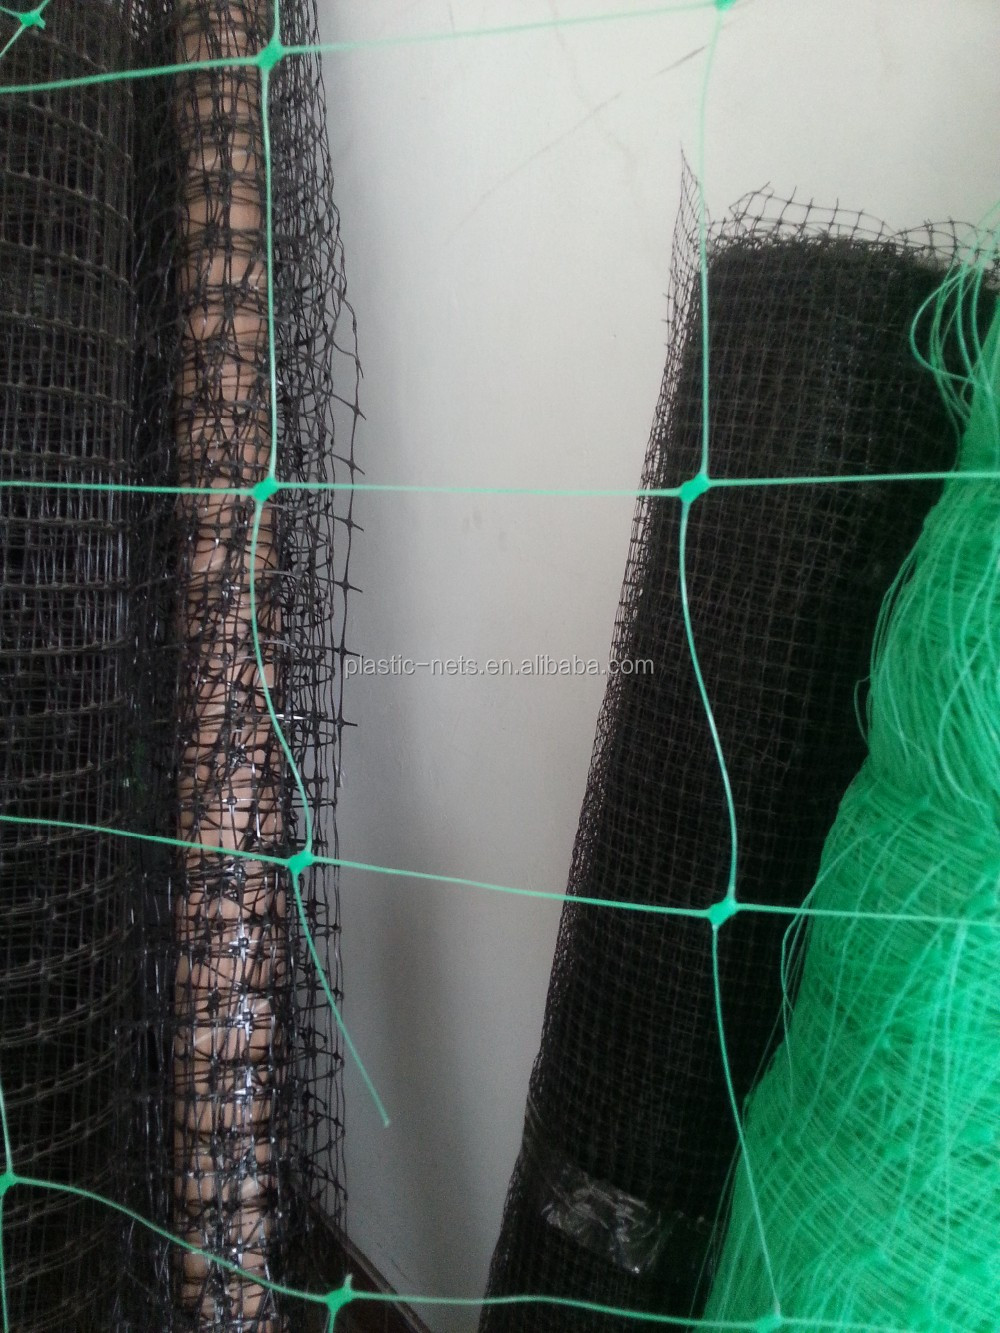 15x17cm Pp Netting Trellis Mesh Fence For Greenhouse